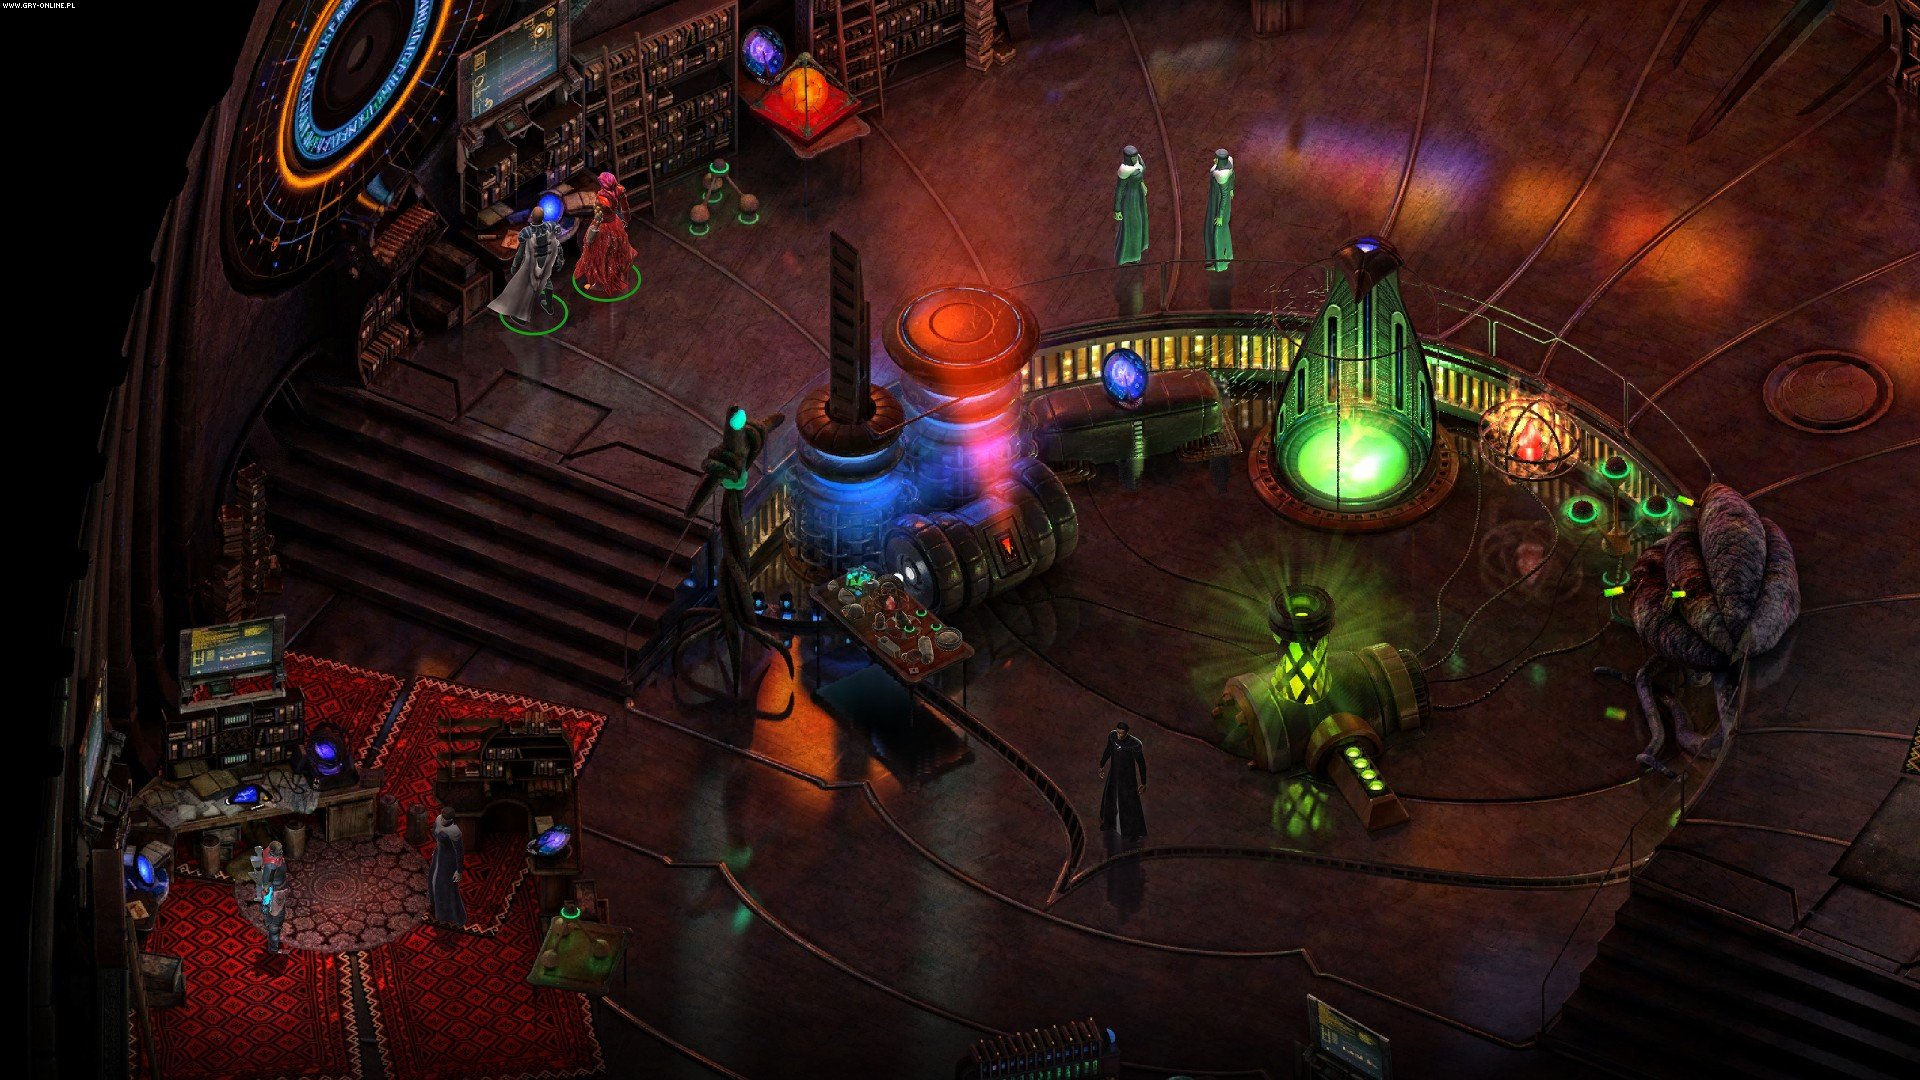 Torment: Tides of Numenera PC Games Image 23/28, inXile entertainment, Techland